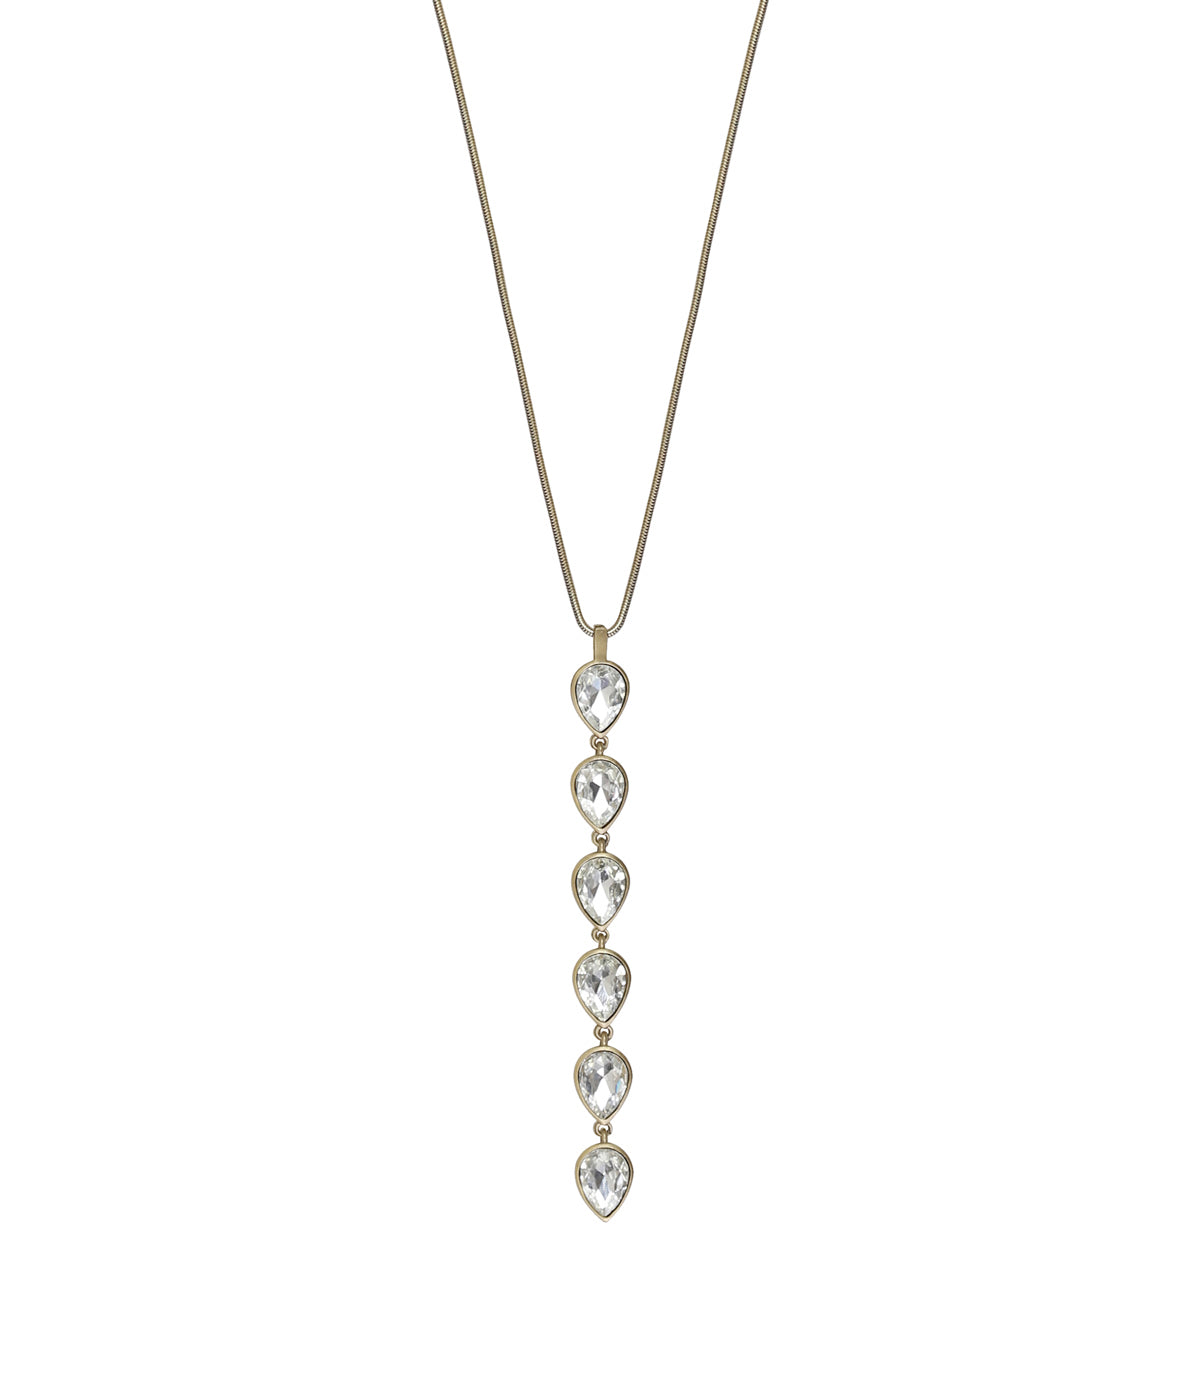 SYDNEY NECKLACE IN GOLD CRYSTAL